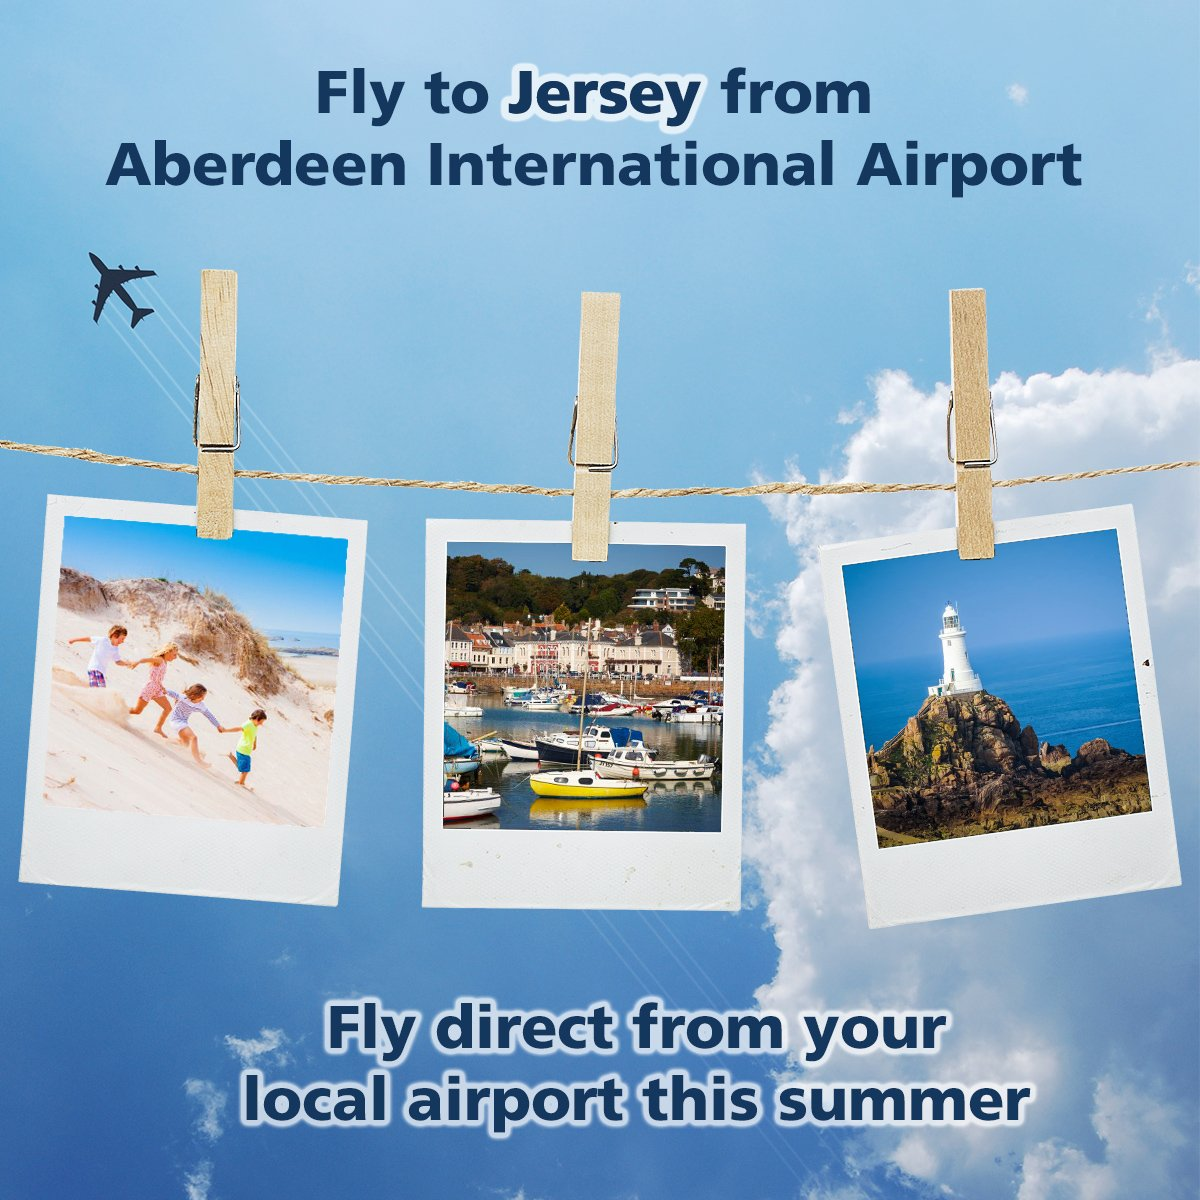 Fly direct to Jersey from your local airport this summer!